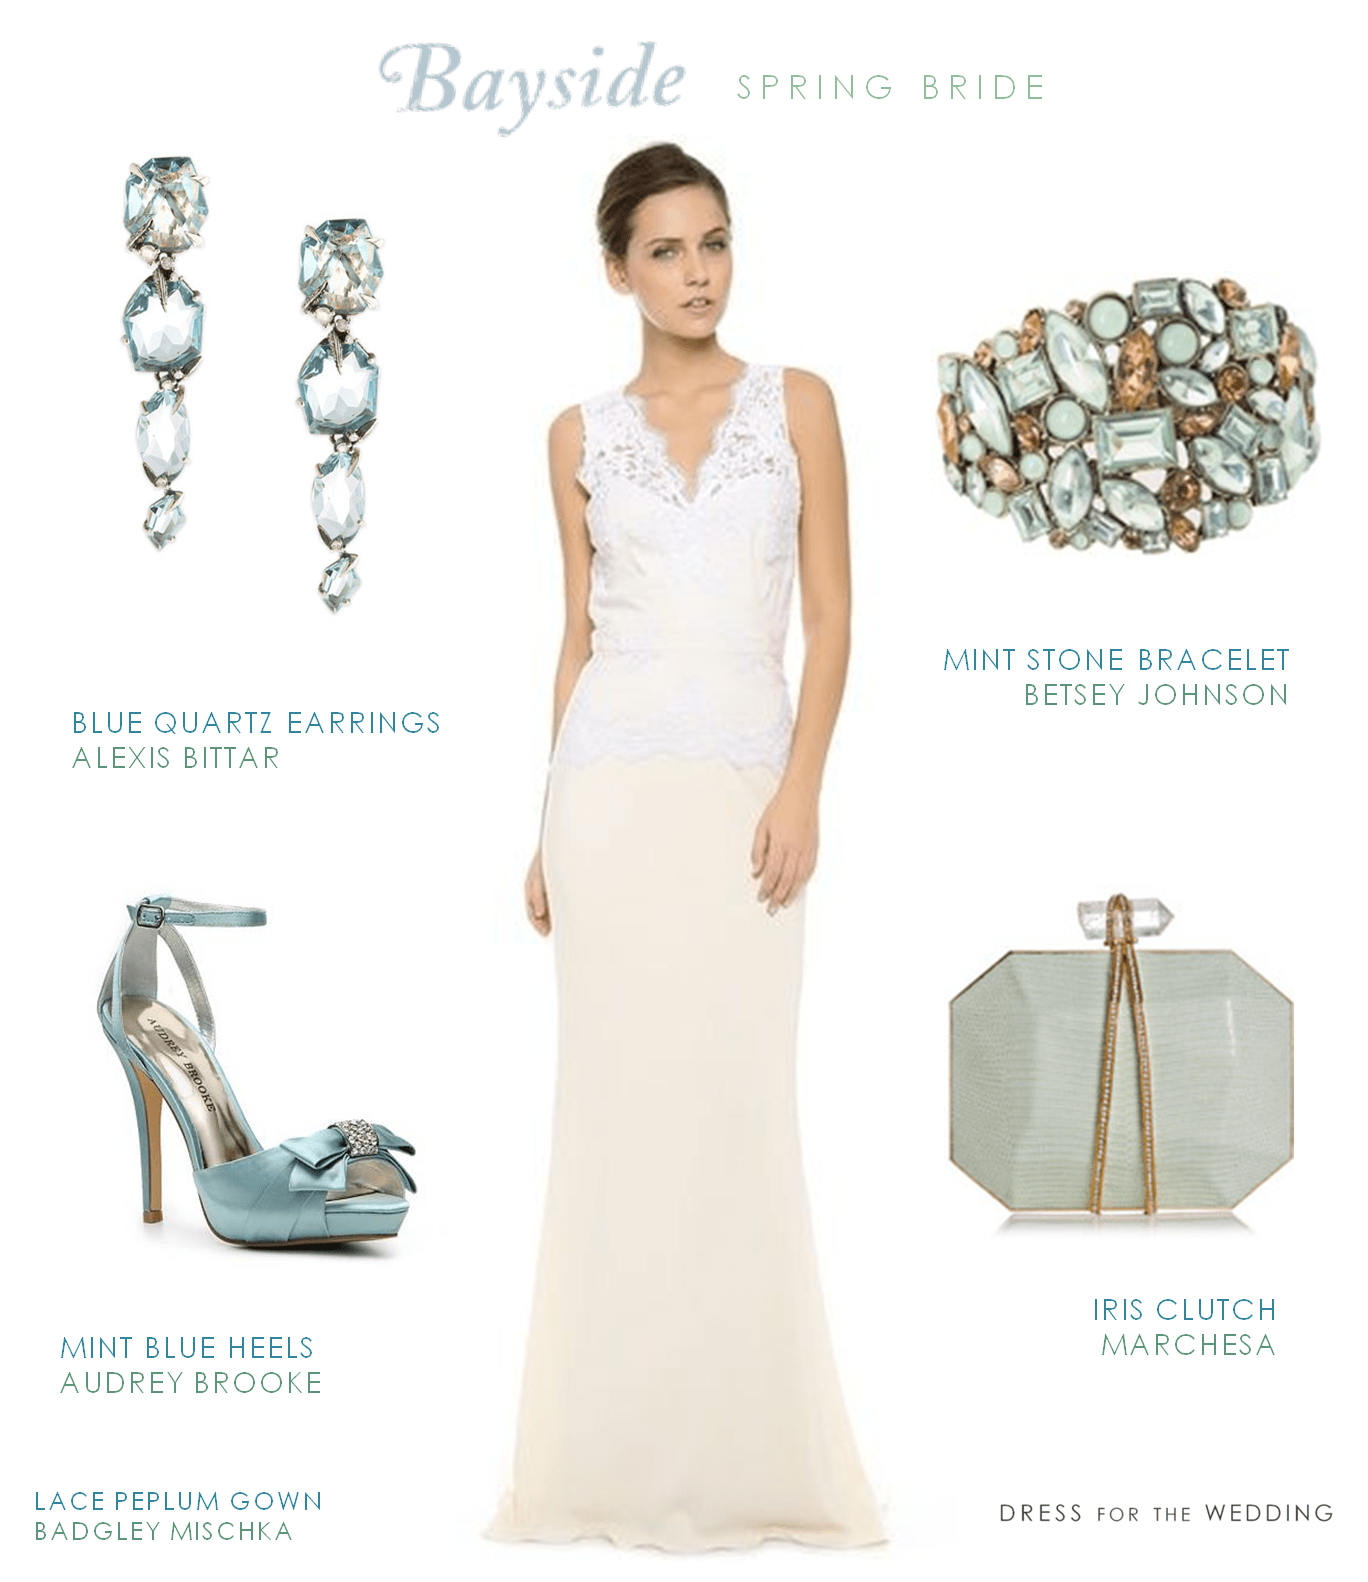 Lace Wedding Dress with Keyhole Back and Light Blue Accessories